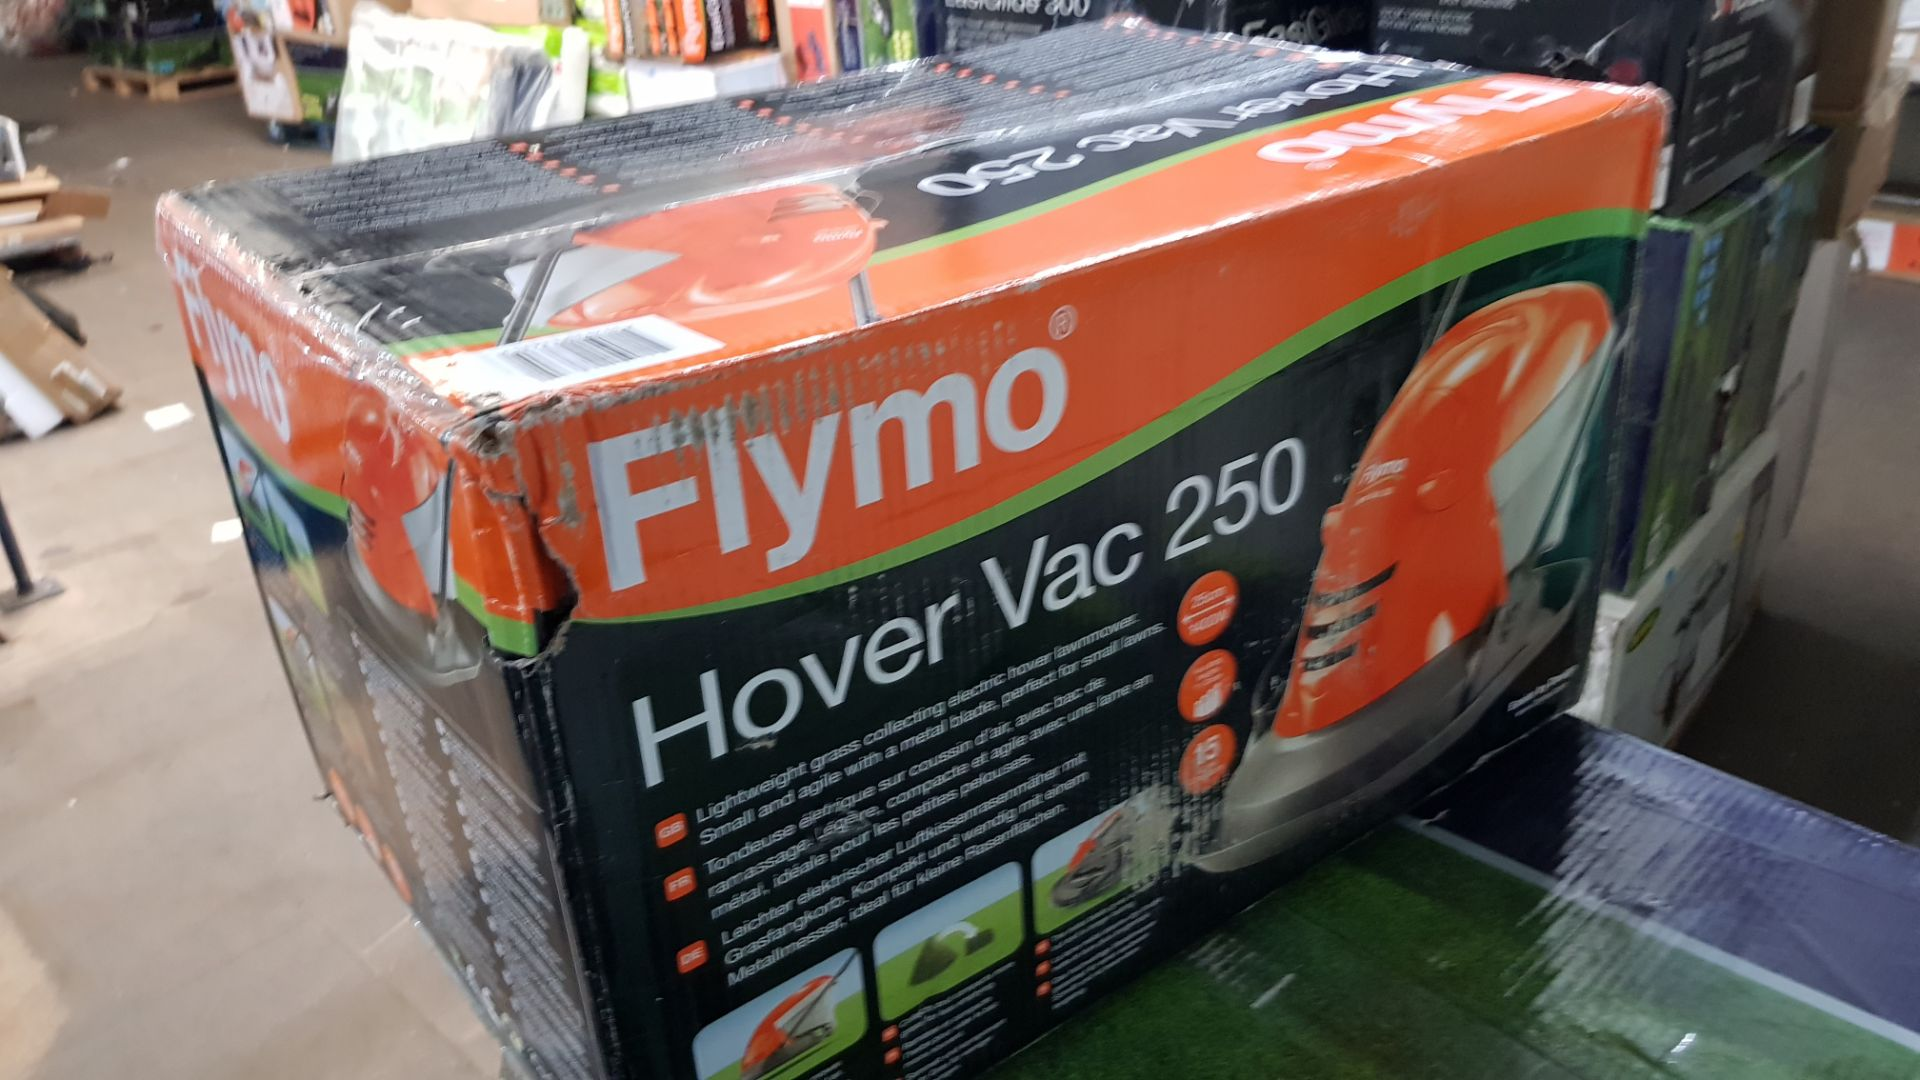 (P10) 1x Flymo Hover Vac 250 RRP £80. New, Sealed Item With Some Box Damage. - Image 4 of 4